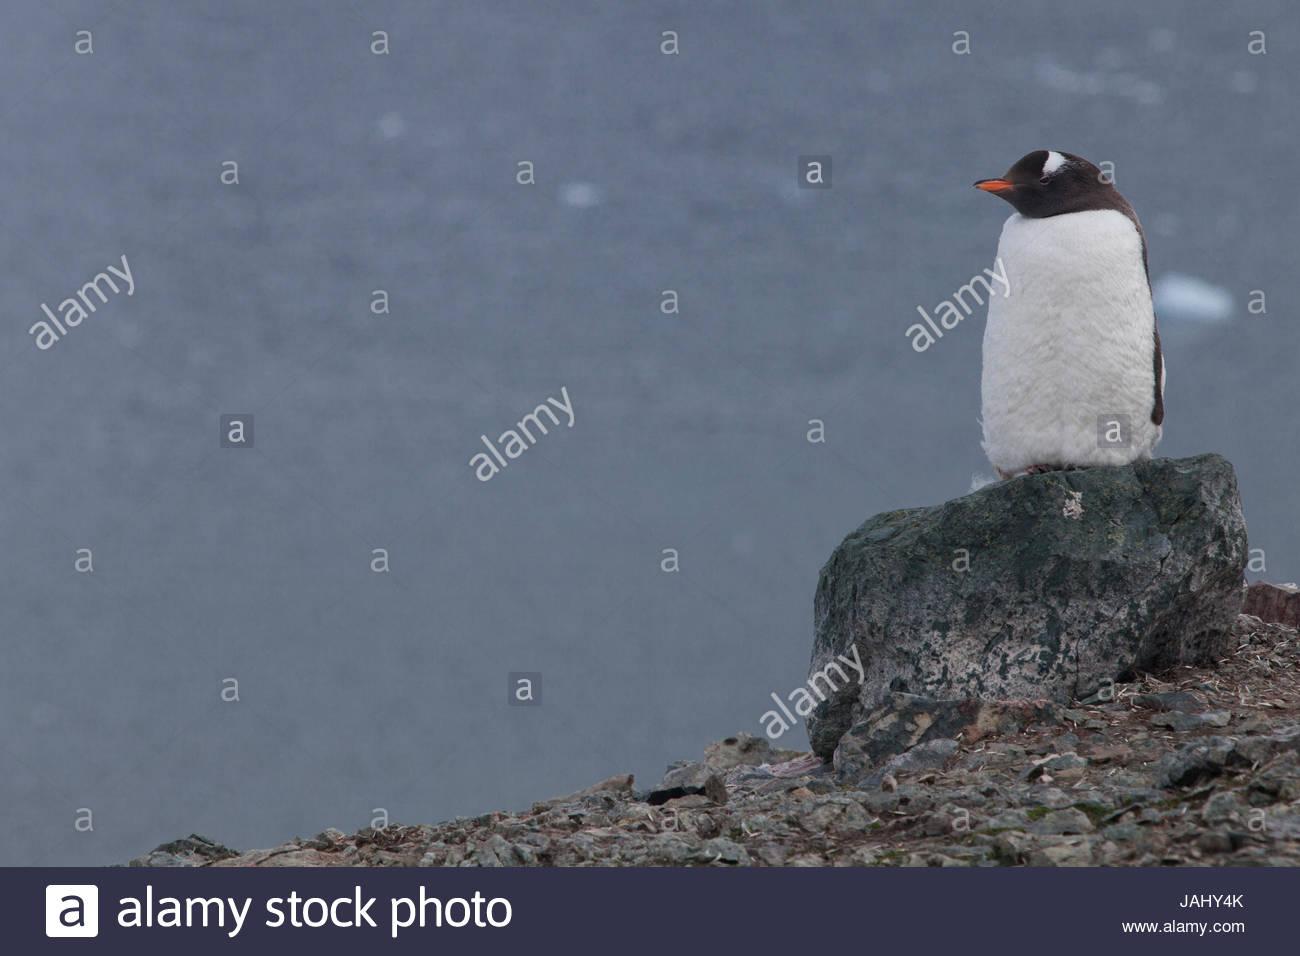 A gentoo penguin, Pygoscelis papua, perched atop a rock in the rookery on Danco Island. - Stock Image